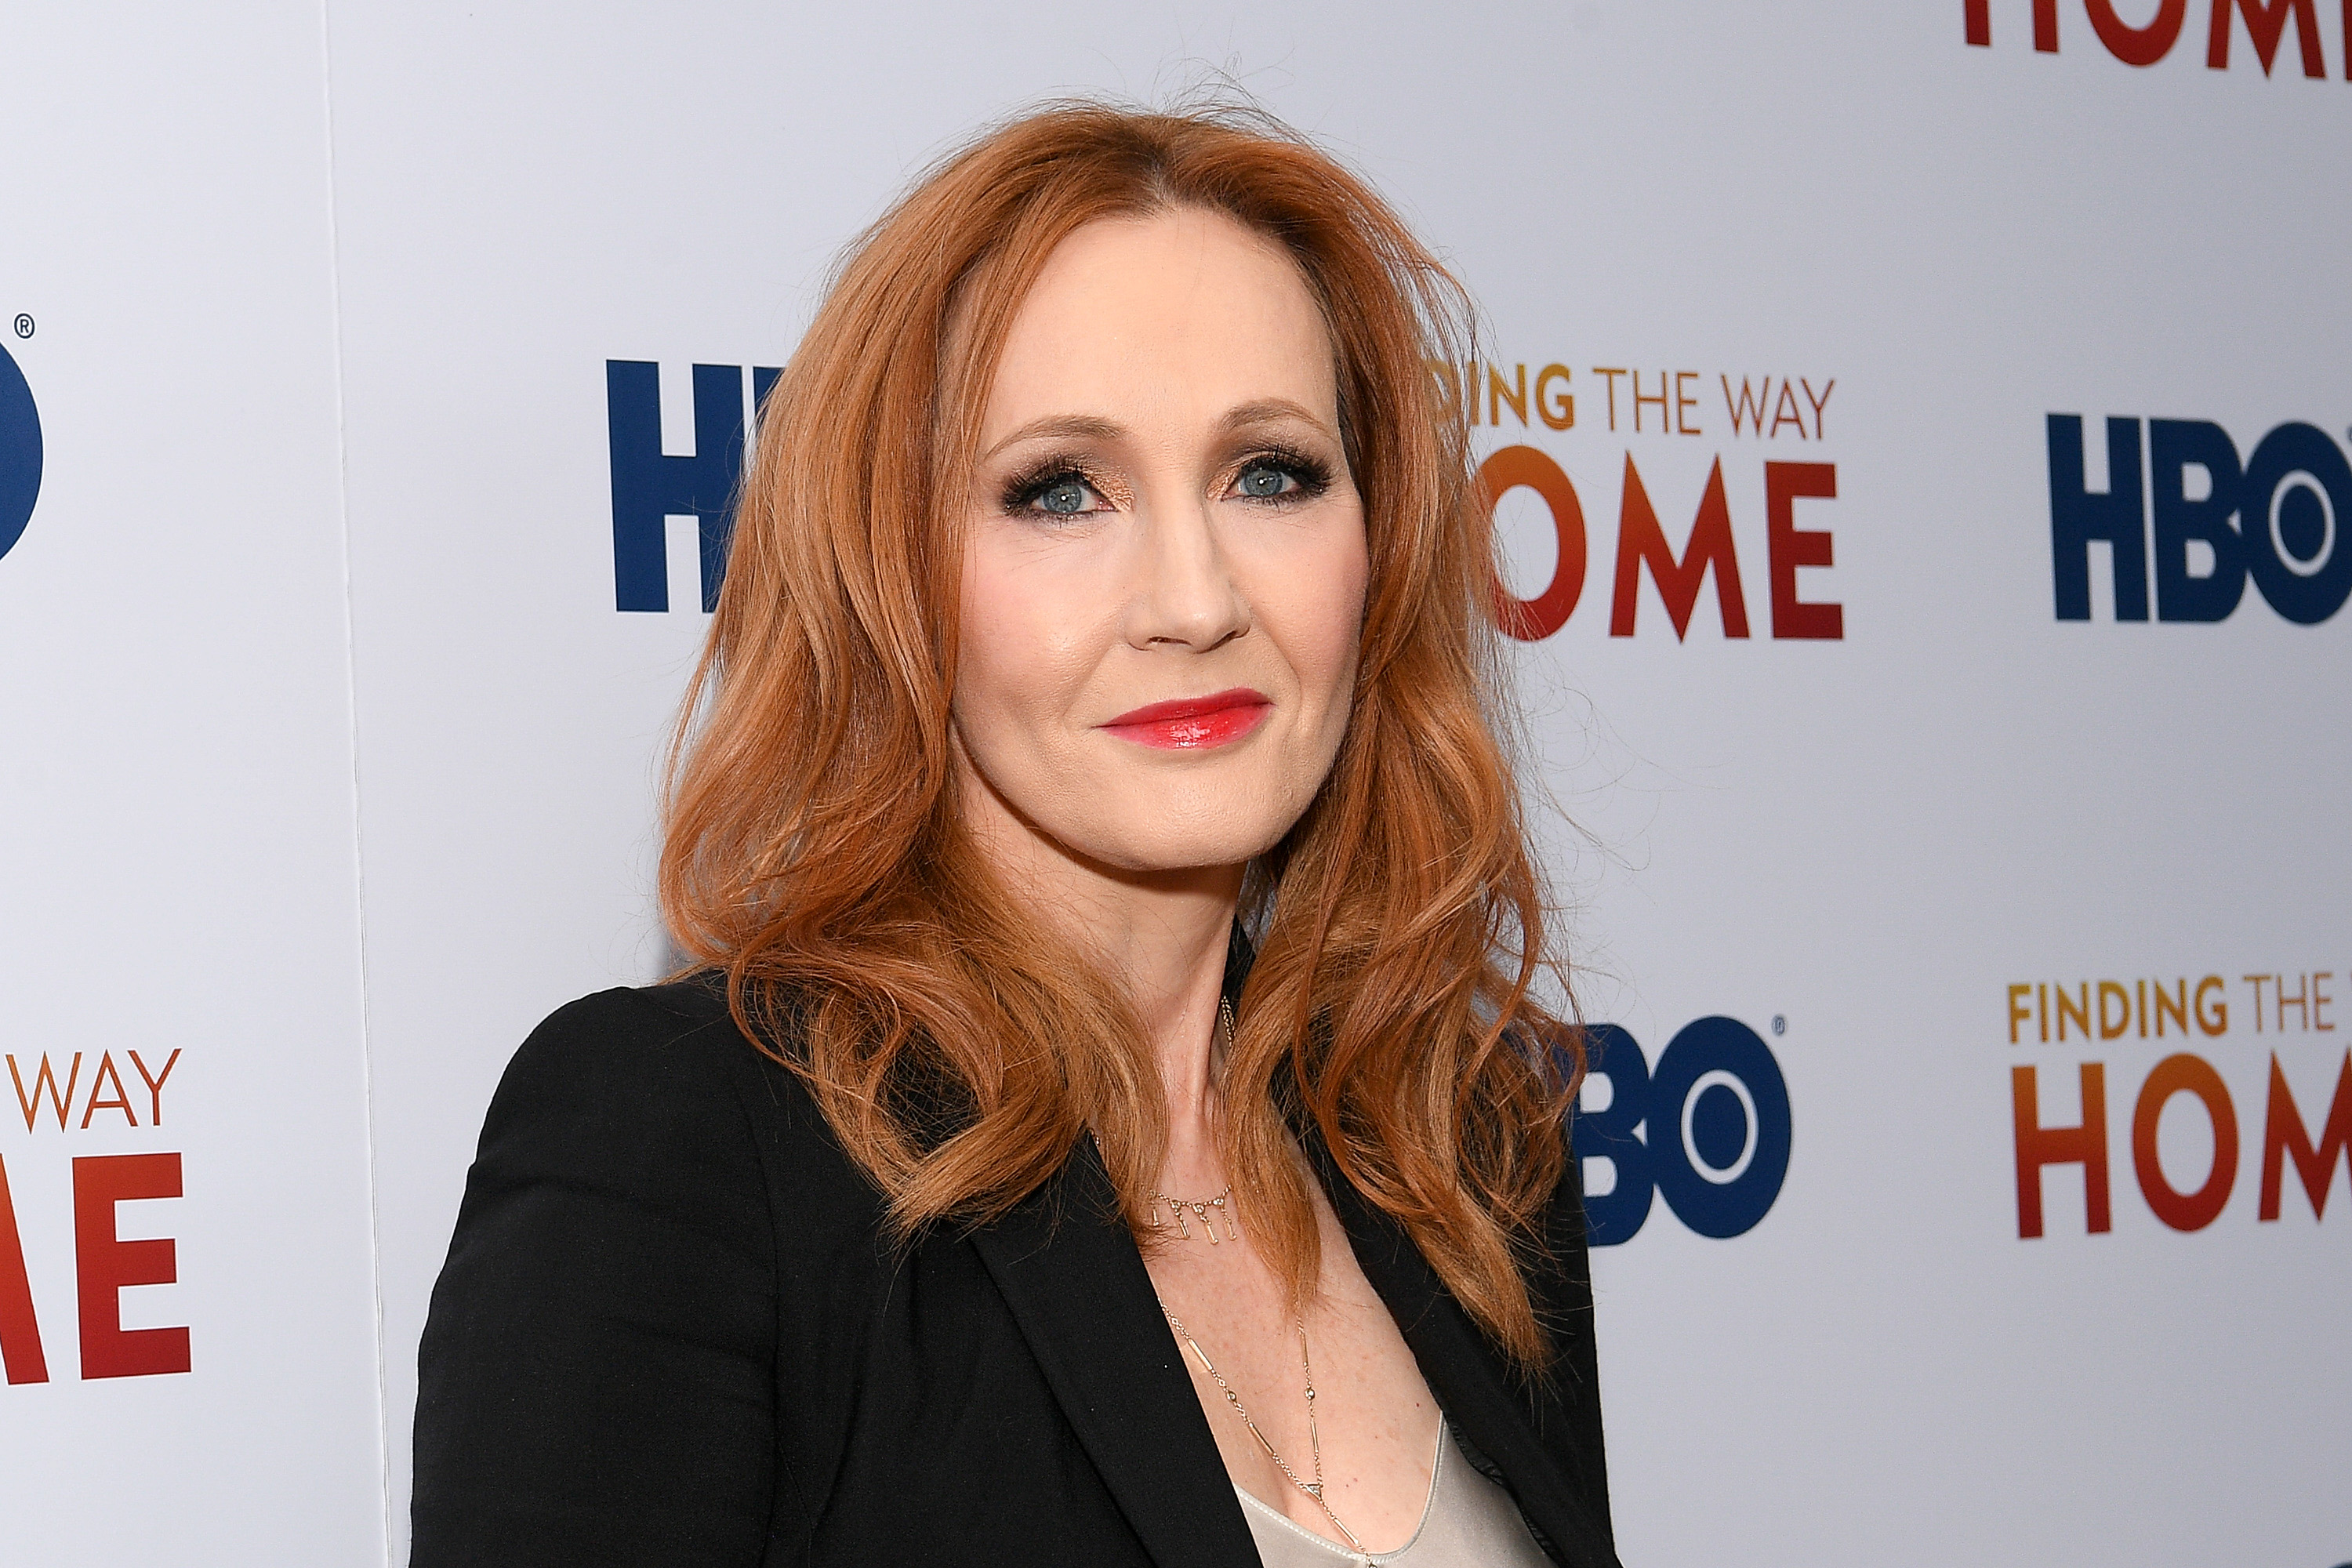 Has J.K. Rowling figured out a way to break our cancel culture ...